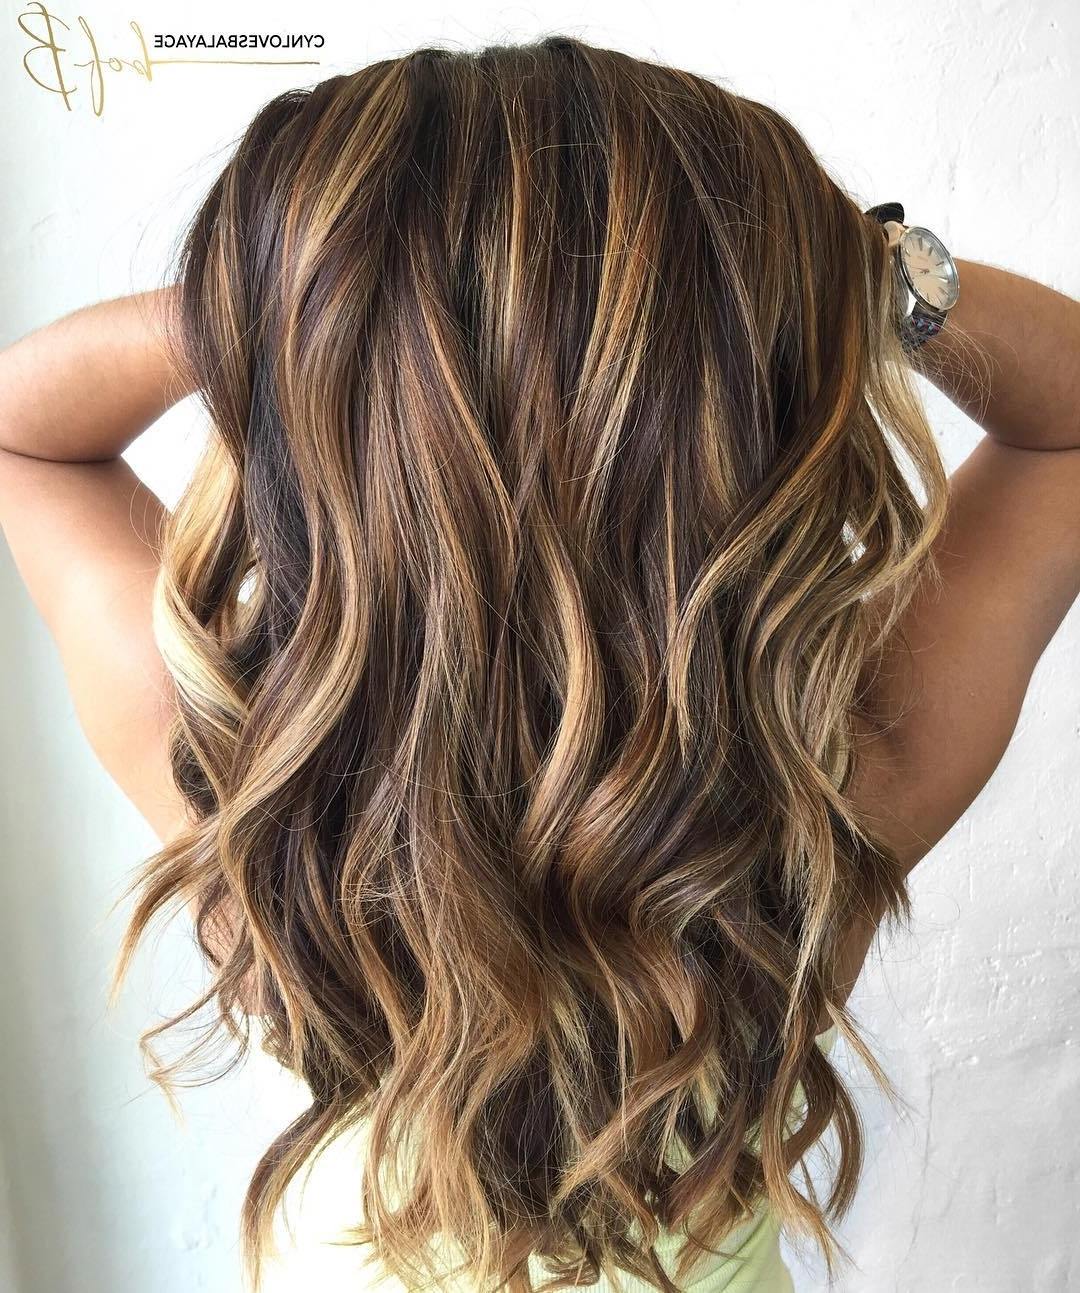 Favorite Caramel Blonde Hairstyles With 60 Looks With Caramel Highlights On Brown And Dark Brown Hair (View 7 of 20)